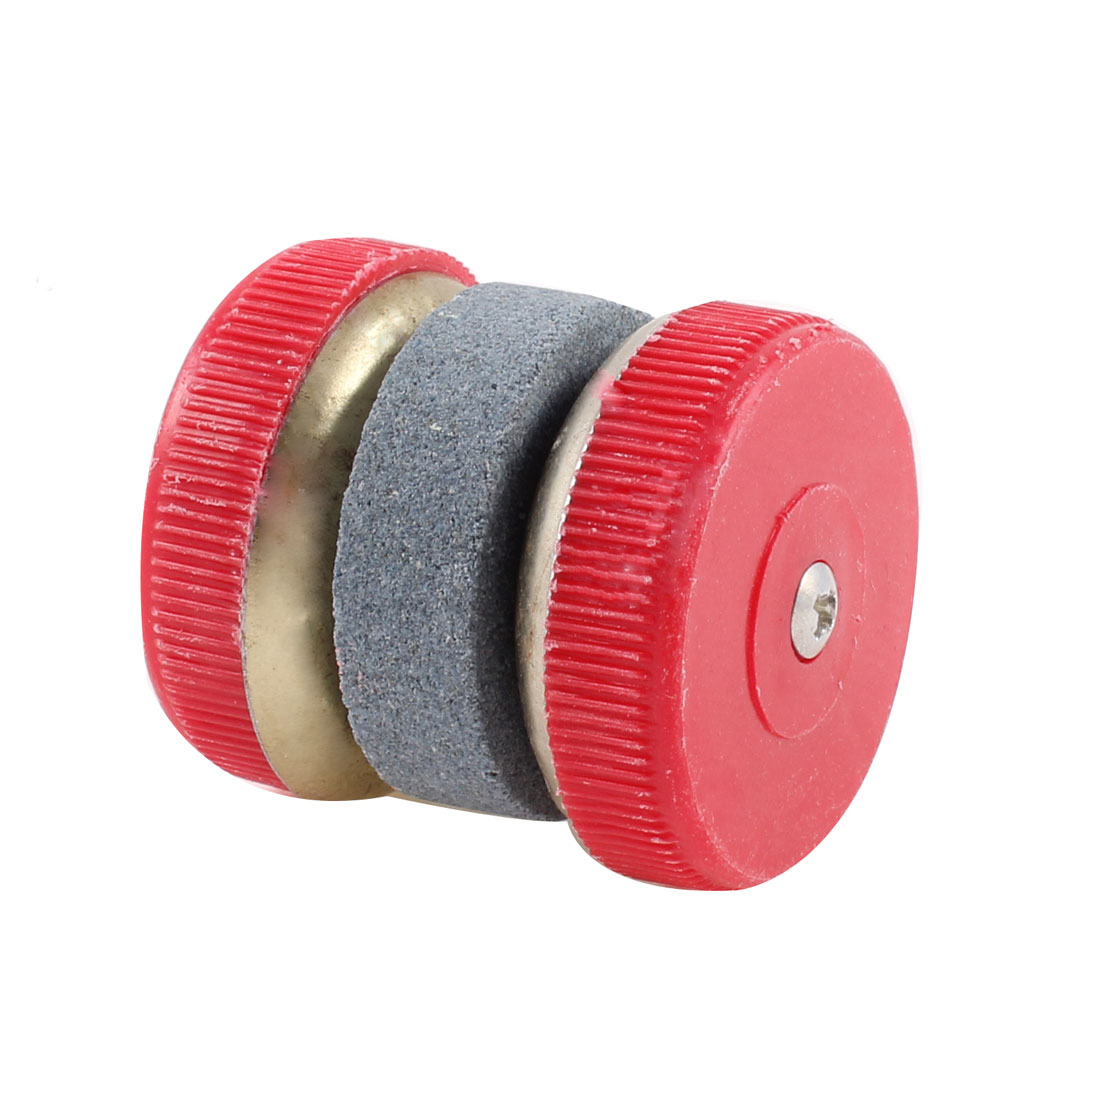 Family Kitchen Round Grinding Cutter Sharpening Whetstone Red Gray